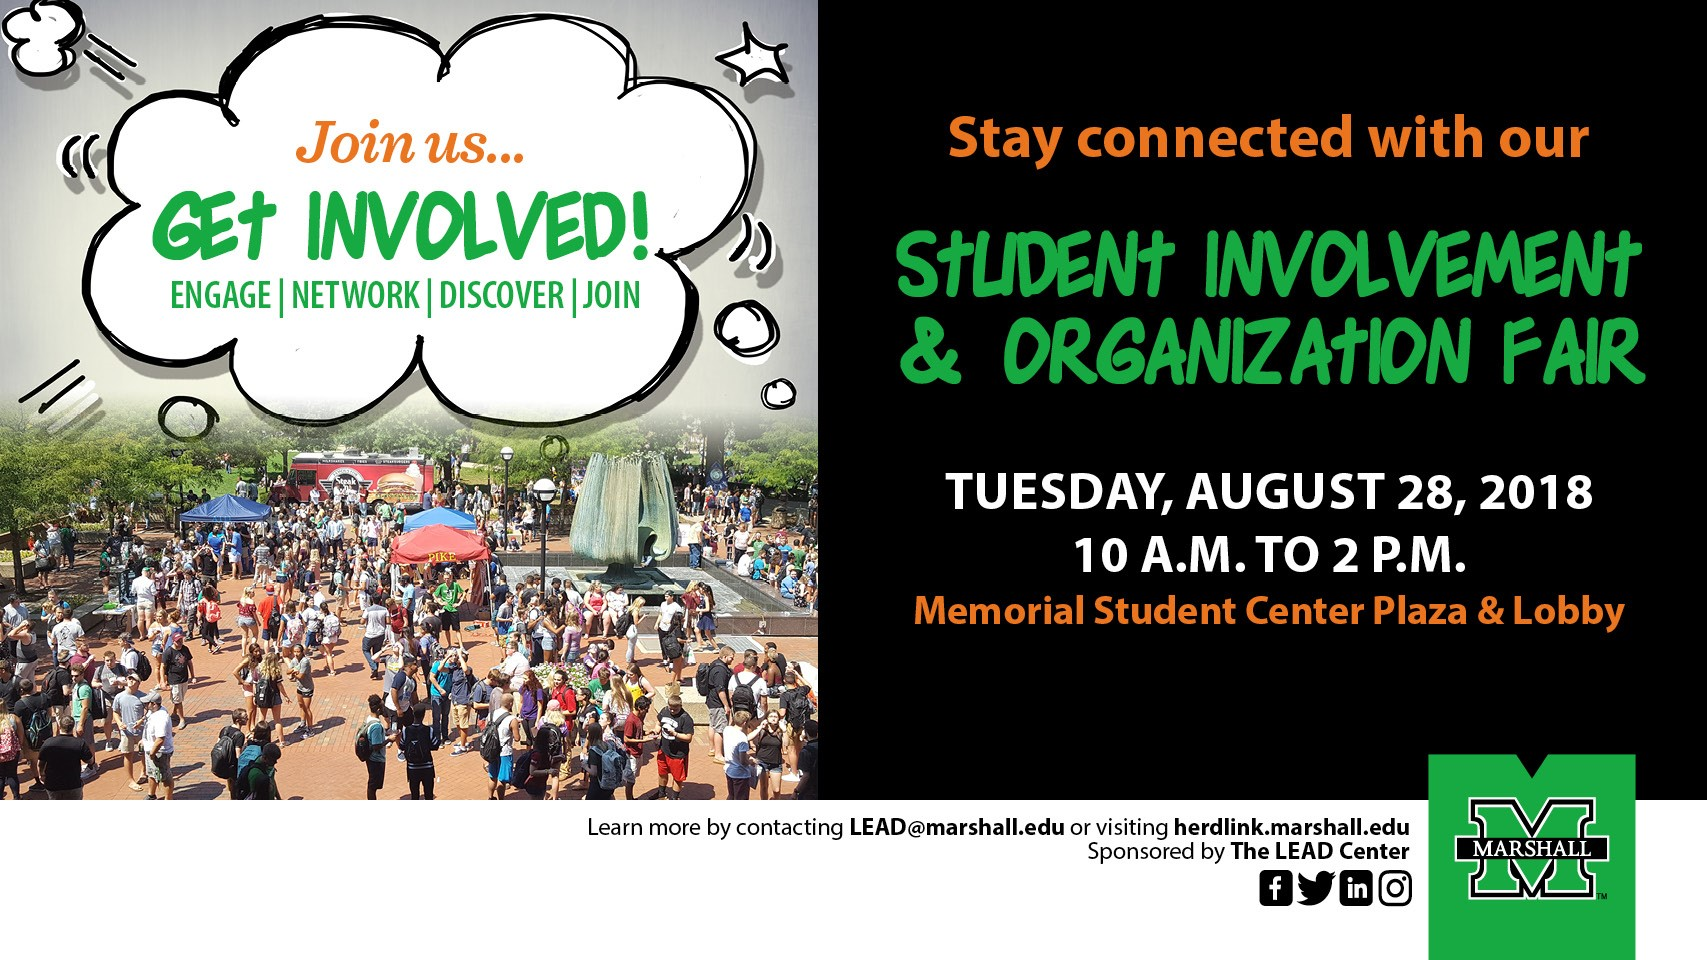 students should get involved in community activities